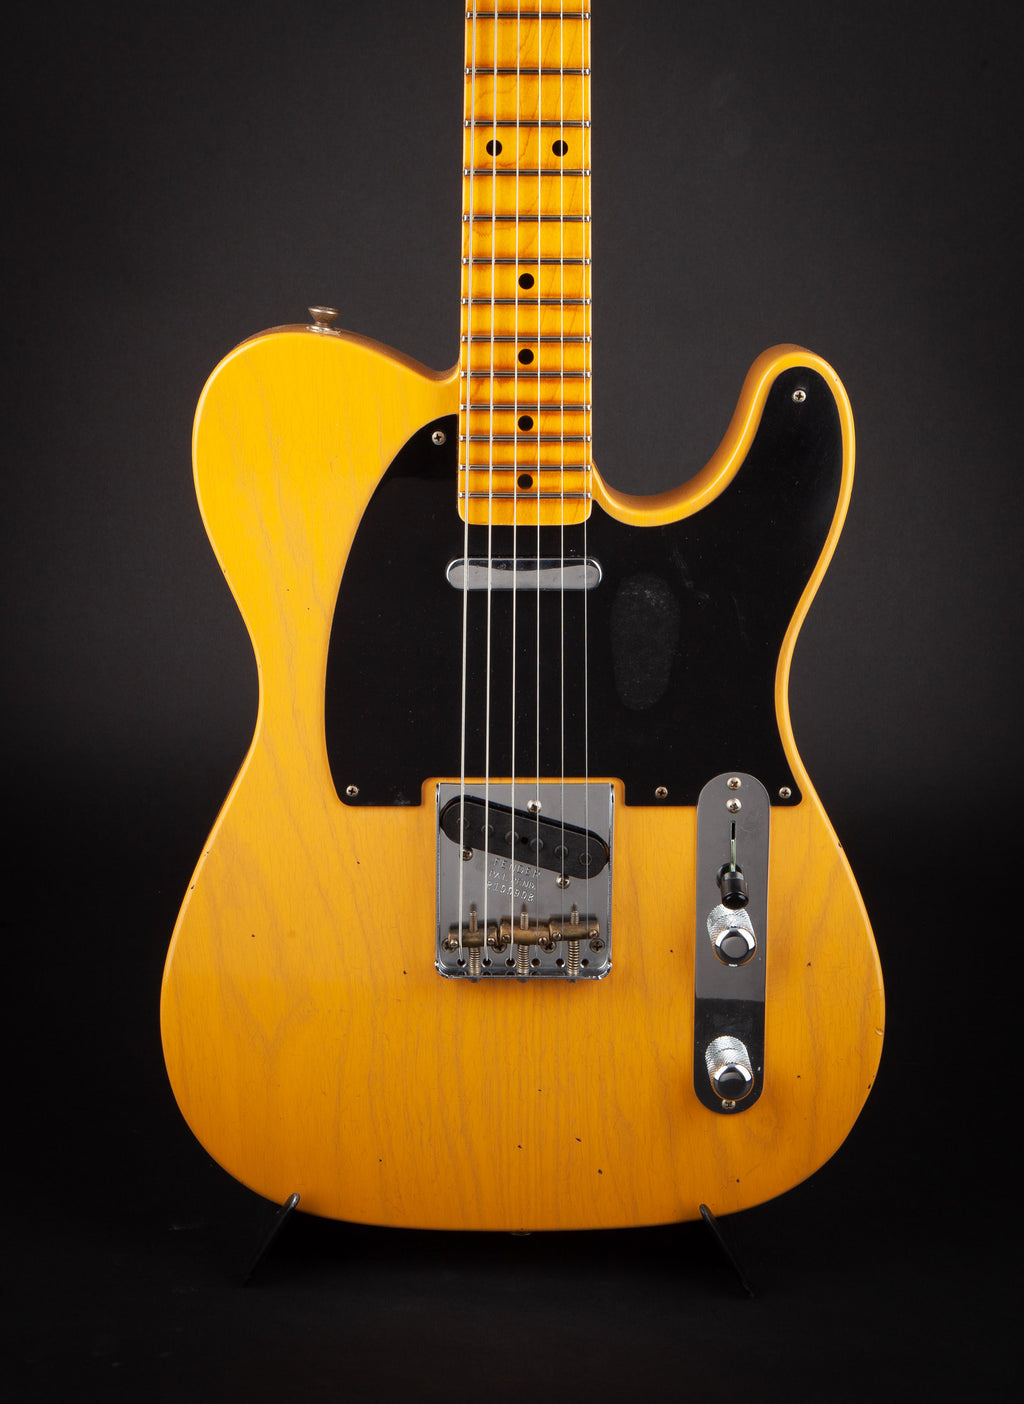 Fender Custom Shop: 52 Telecaster Butterscotch Journeyman #R100908